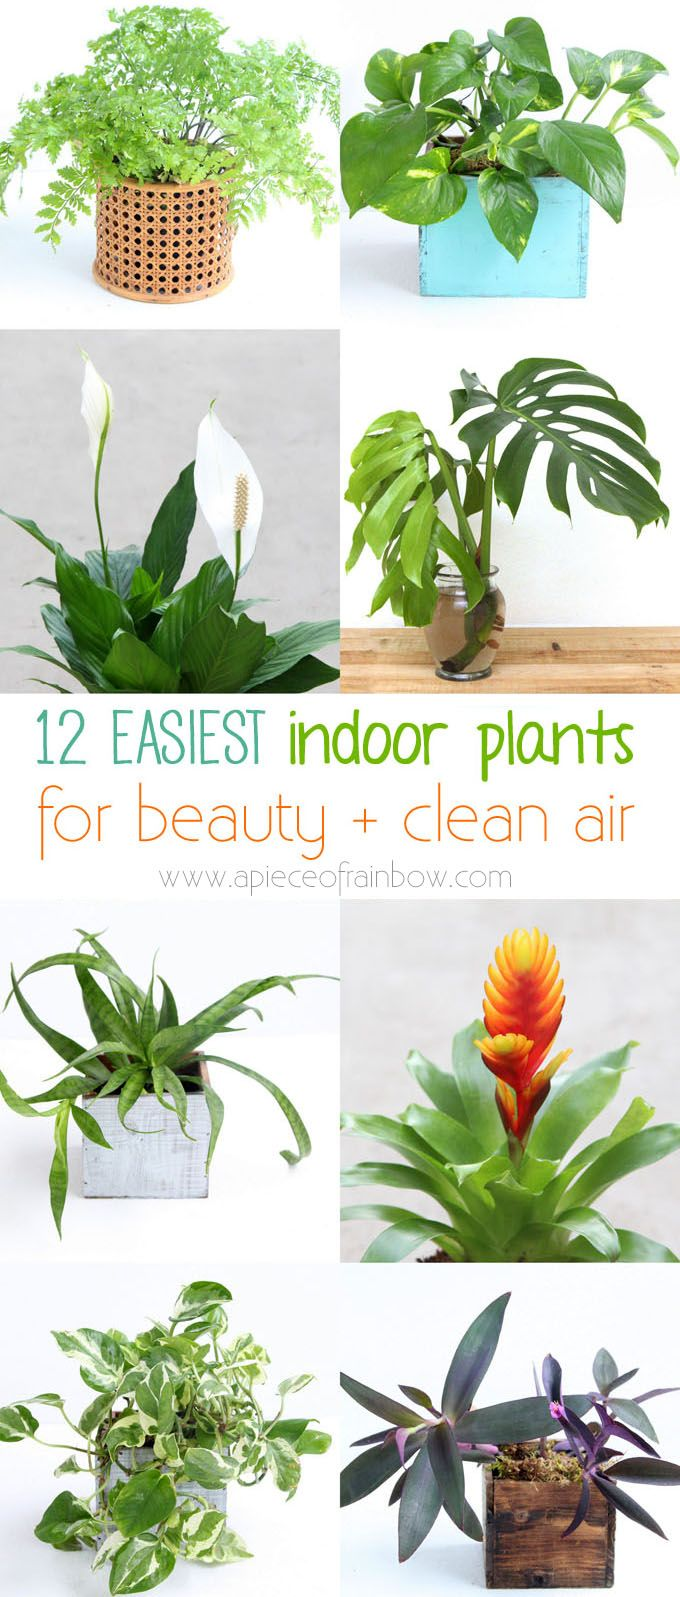 12 easy air purifying indoor plants for beauty well being a piece of rainbow diy pinterest. Black Bedroom Furniture Sets. Home Design Ideas